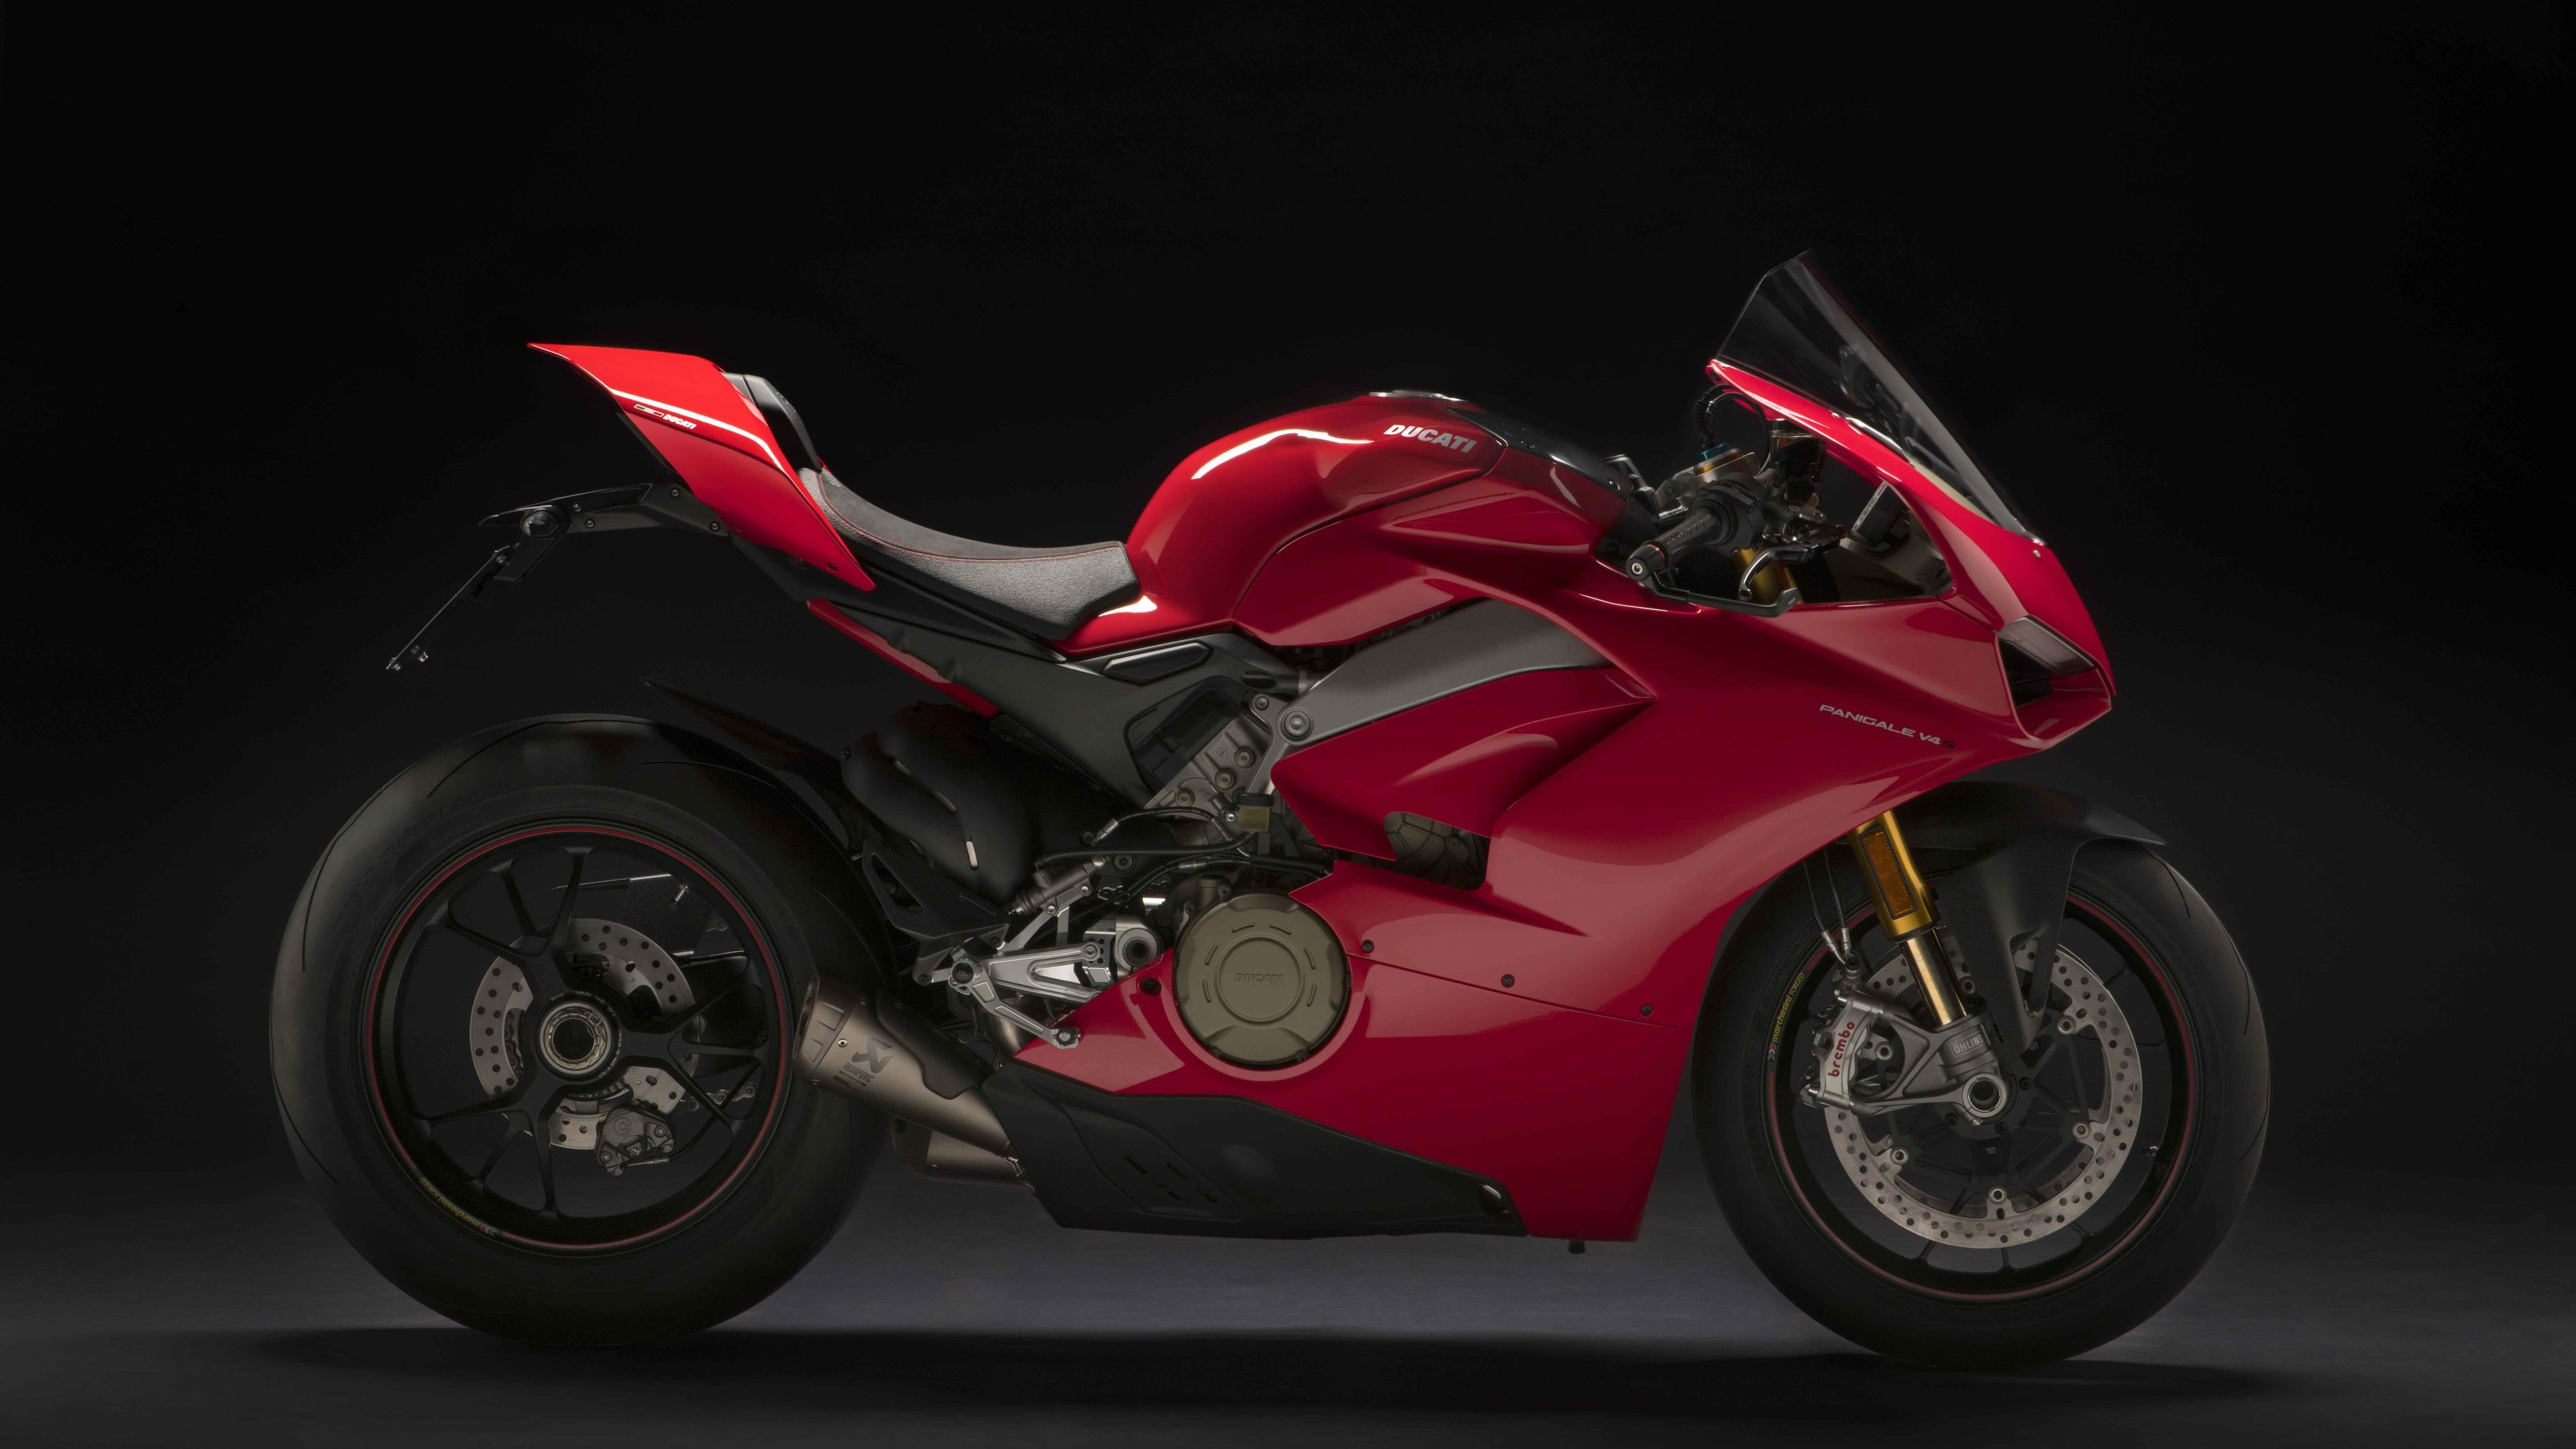 Ducati Panigale V4 4k Hd Wallpapers Ducati Wallpapers Ducati Panigale Wallpapers Bikes Wallpapers 8k Wallpa Ducati Motorcycles Ducati Panigale Ducati Motor